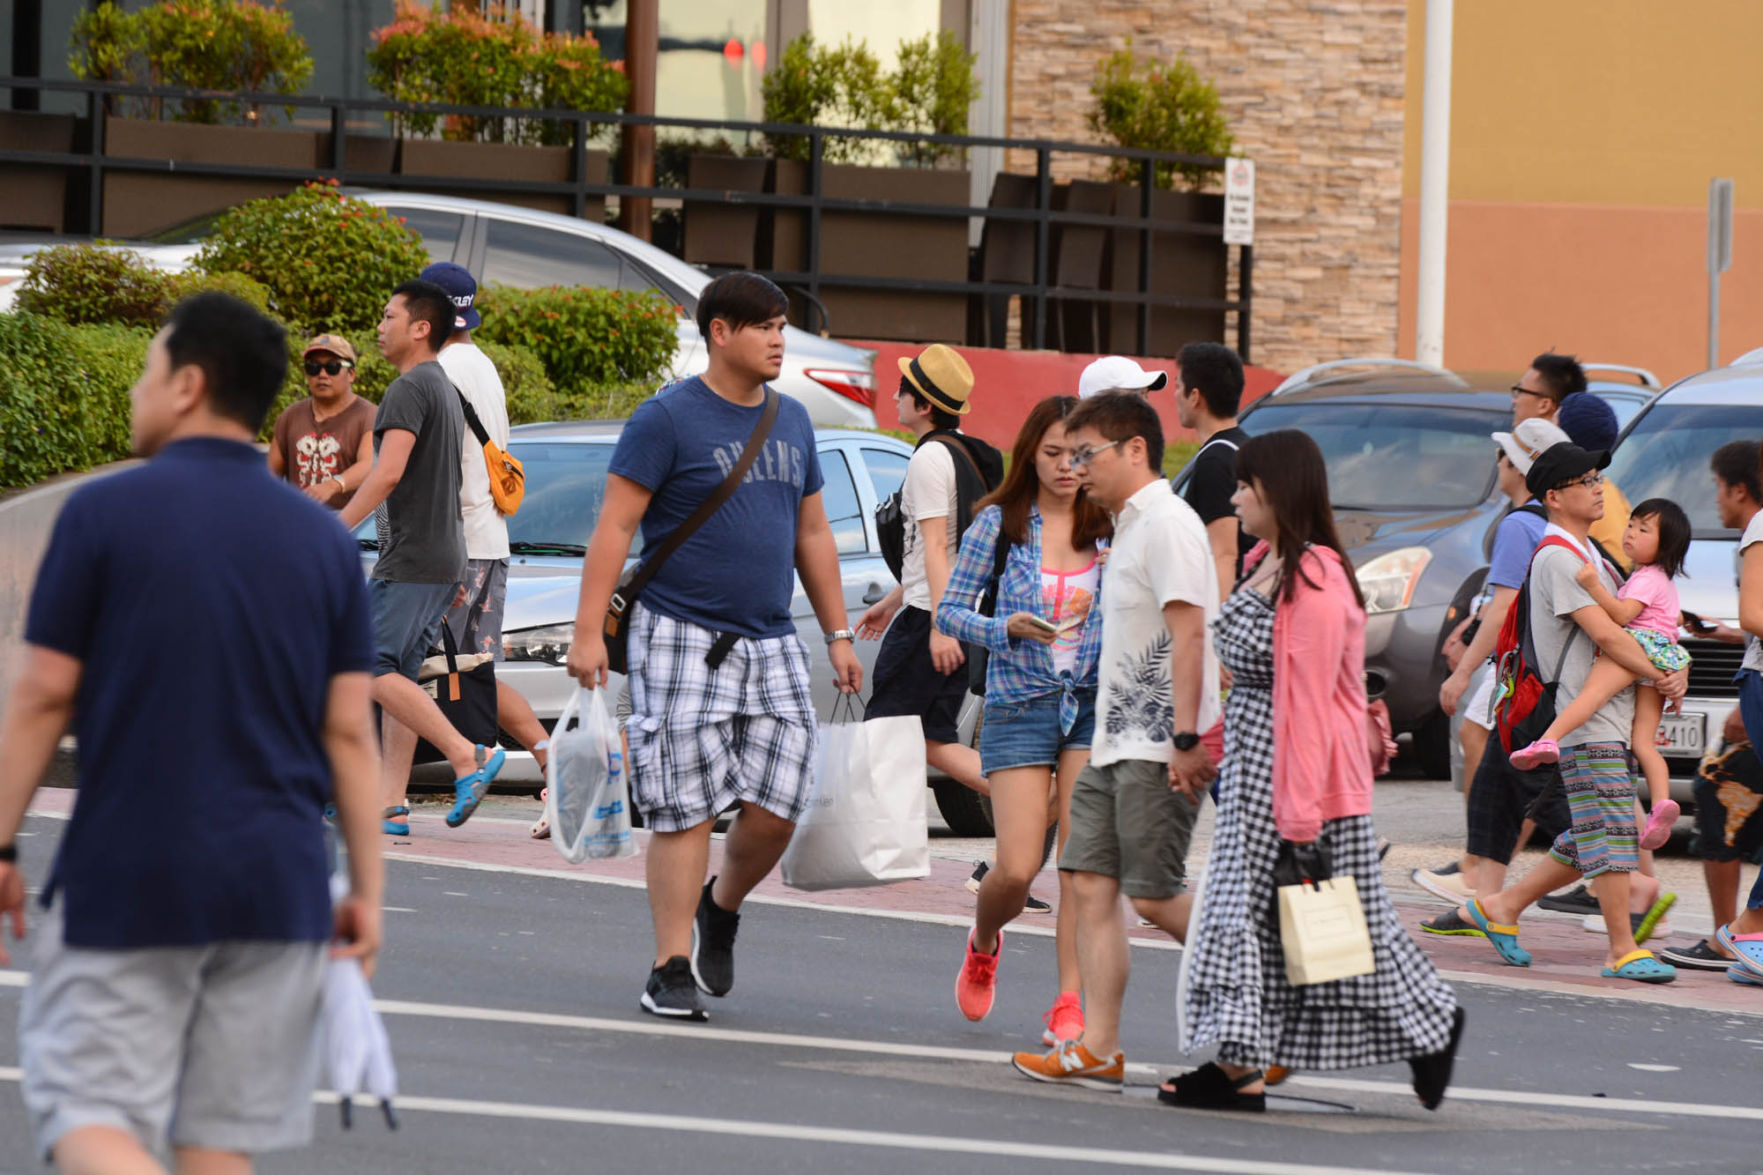 Guam reaches new peak: 1.53M tourists | Guam News | postguam.com